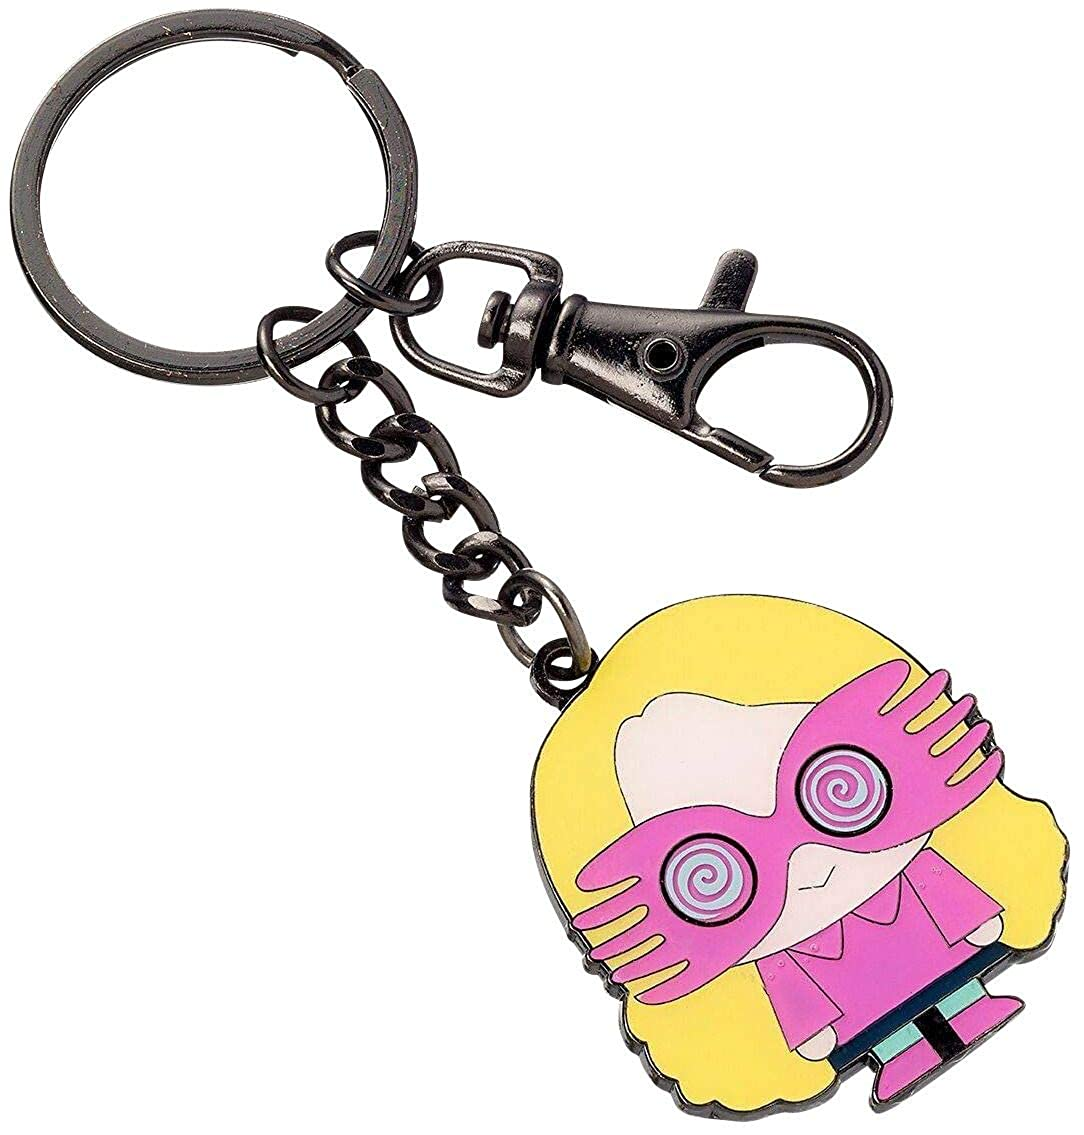 Amazon.com: Oficial de Harry Potter Chibi Luna Lovegood ...